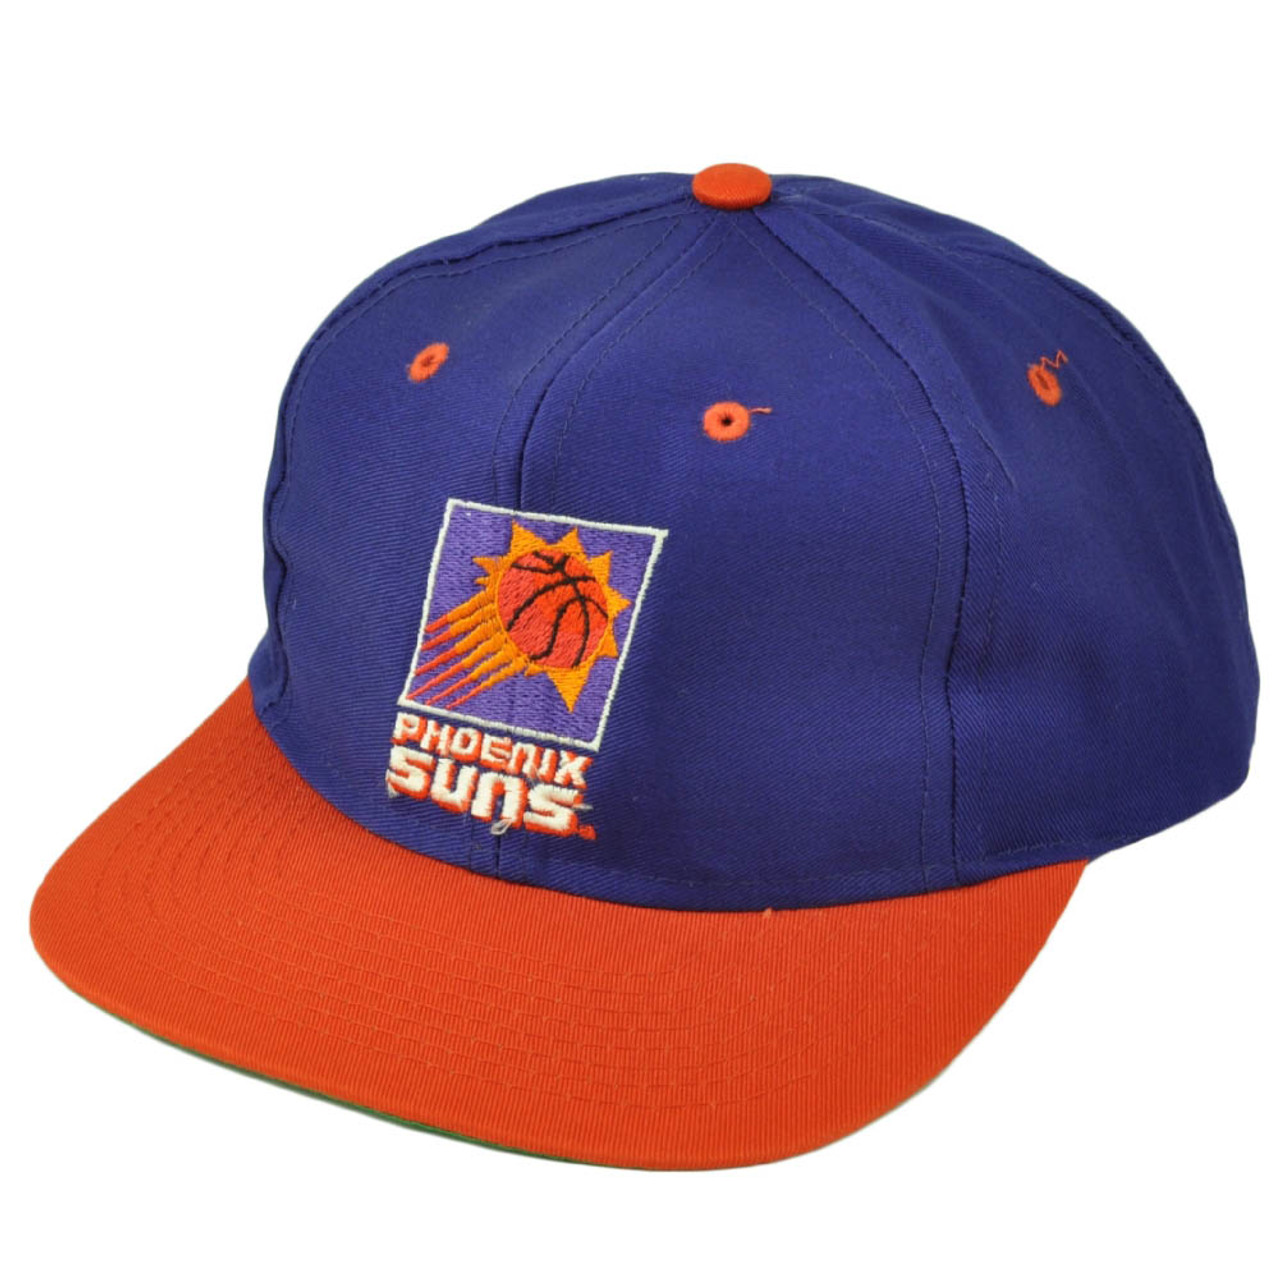 newest collection 6349c 10825 Phoenix Suns Dead Stock Vintage Snapback Hat Cap Old School Purple  Basketball